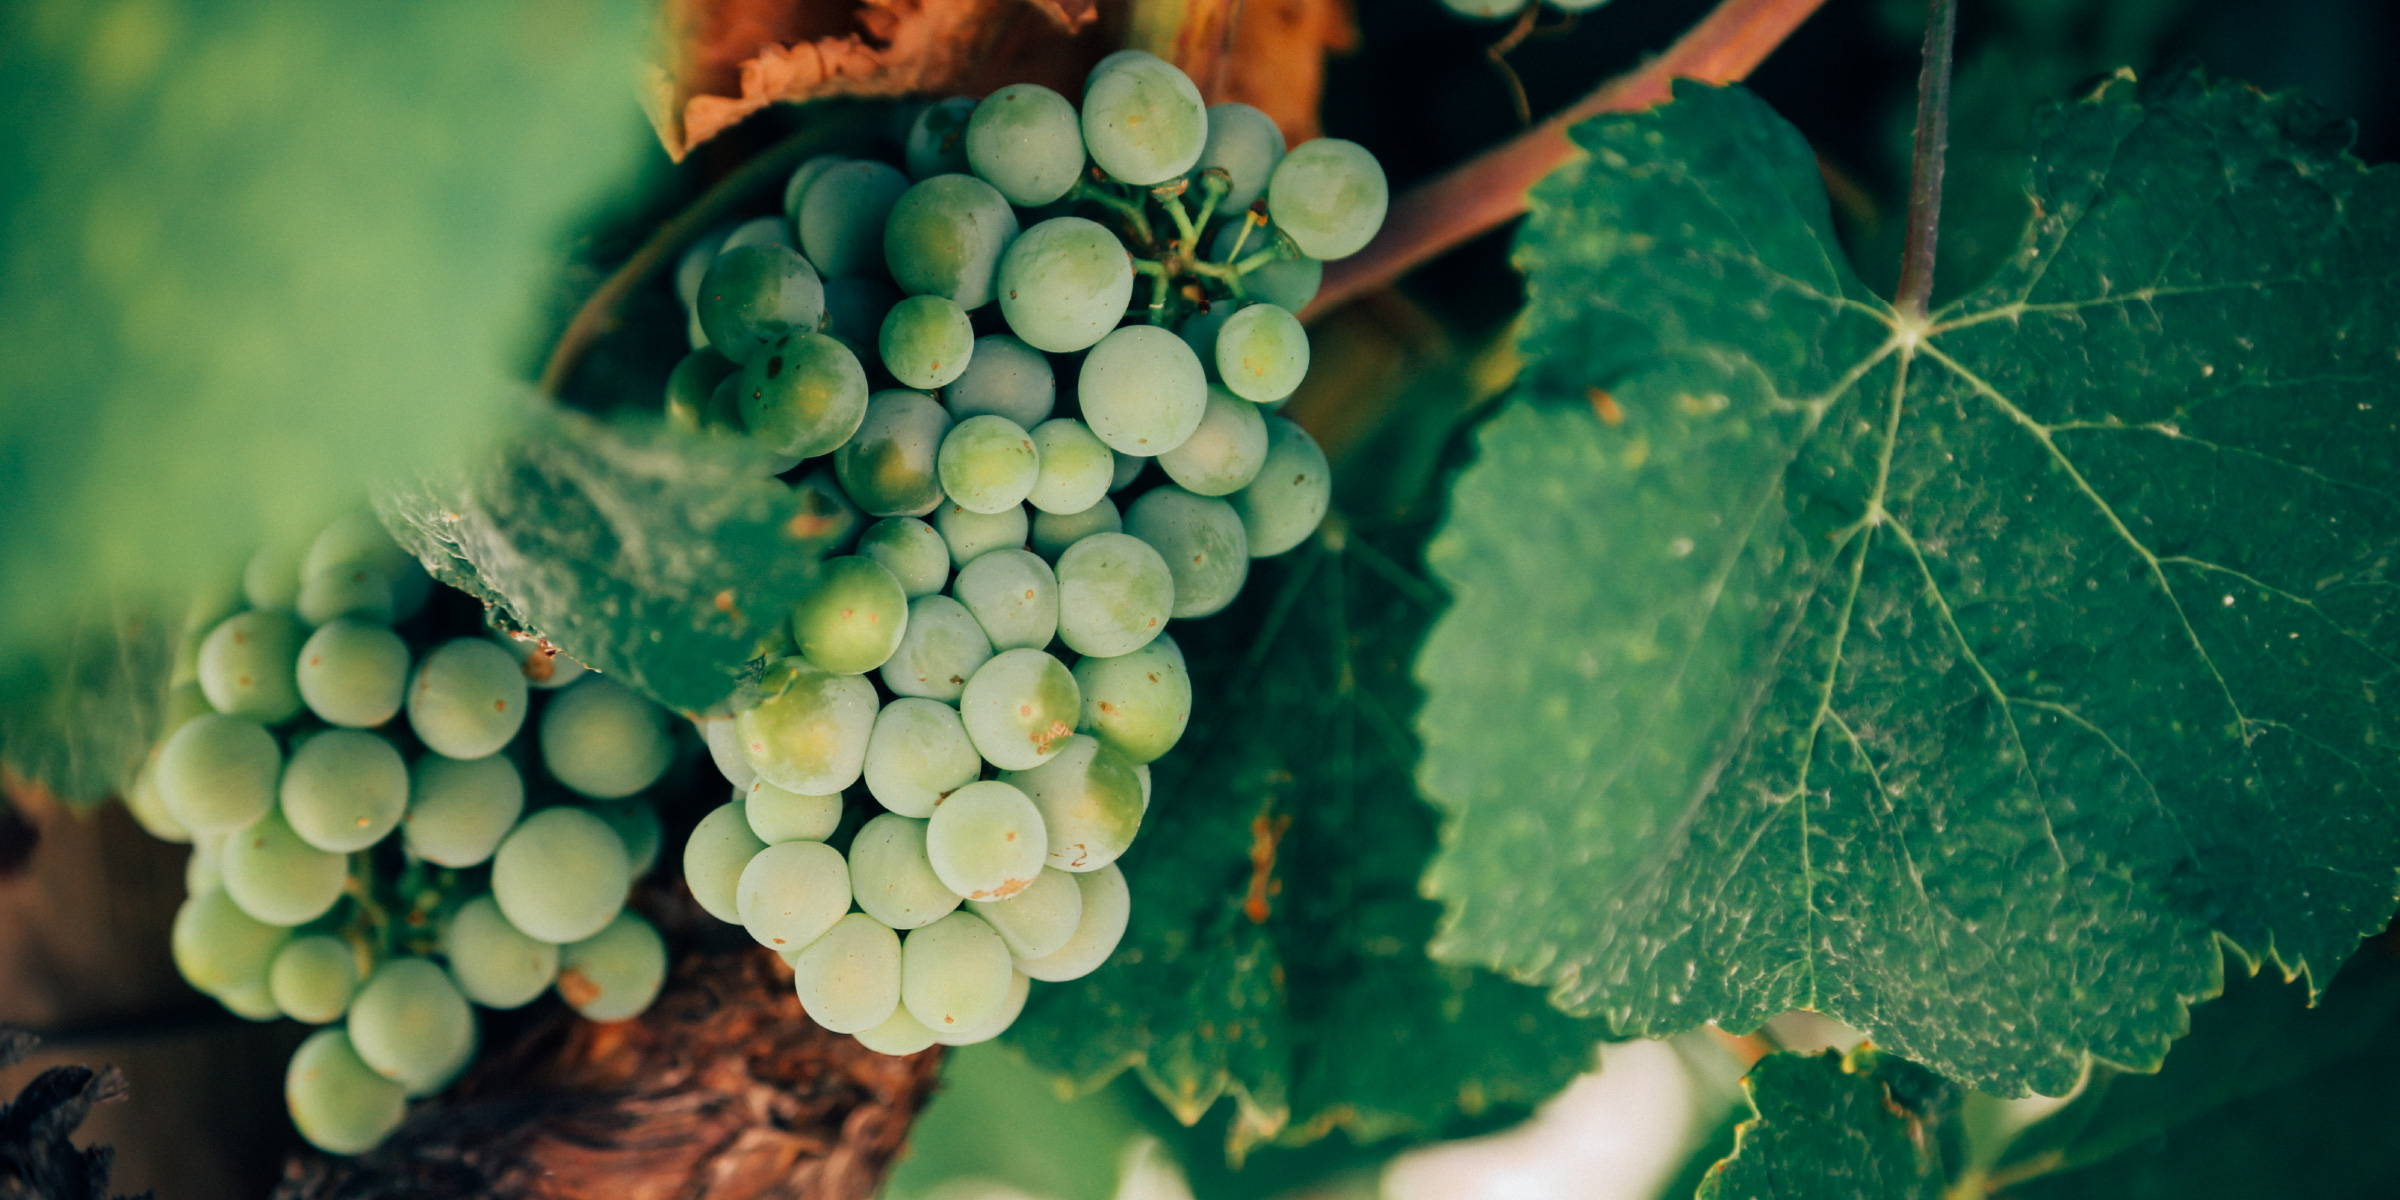 Grapes depicting the importance of supporting independent winemakers ensuring quality, contribute to local economies and helps small businesses.